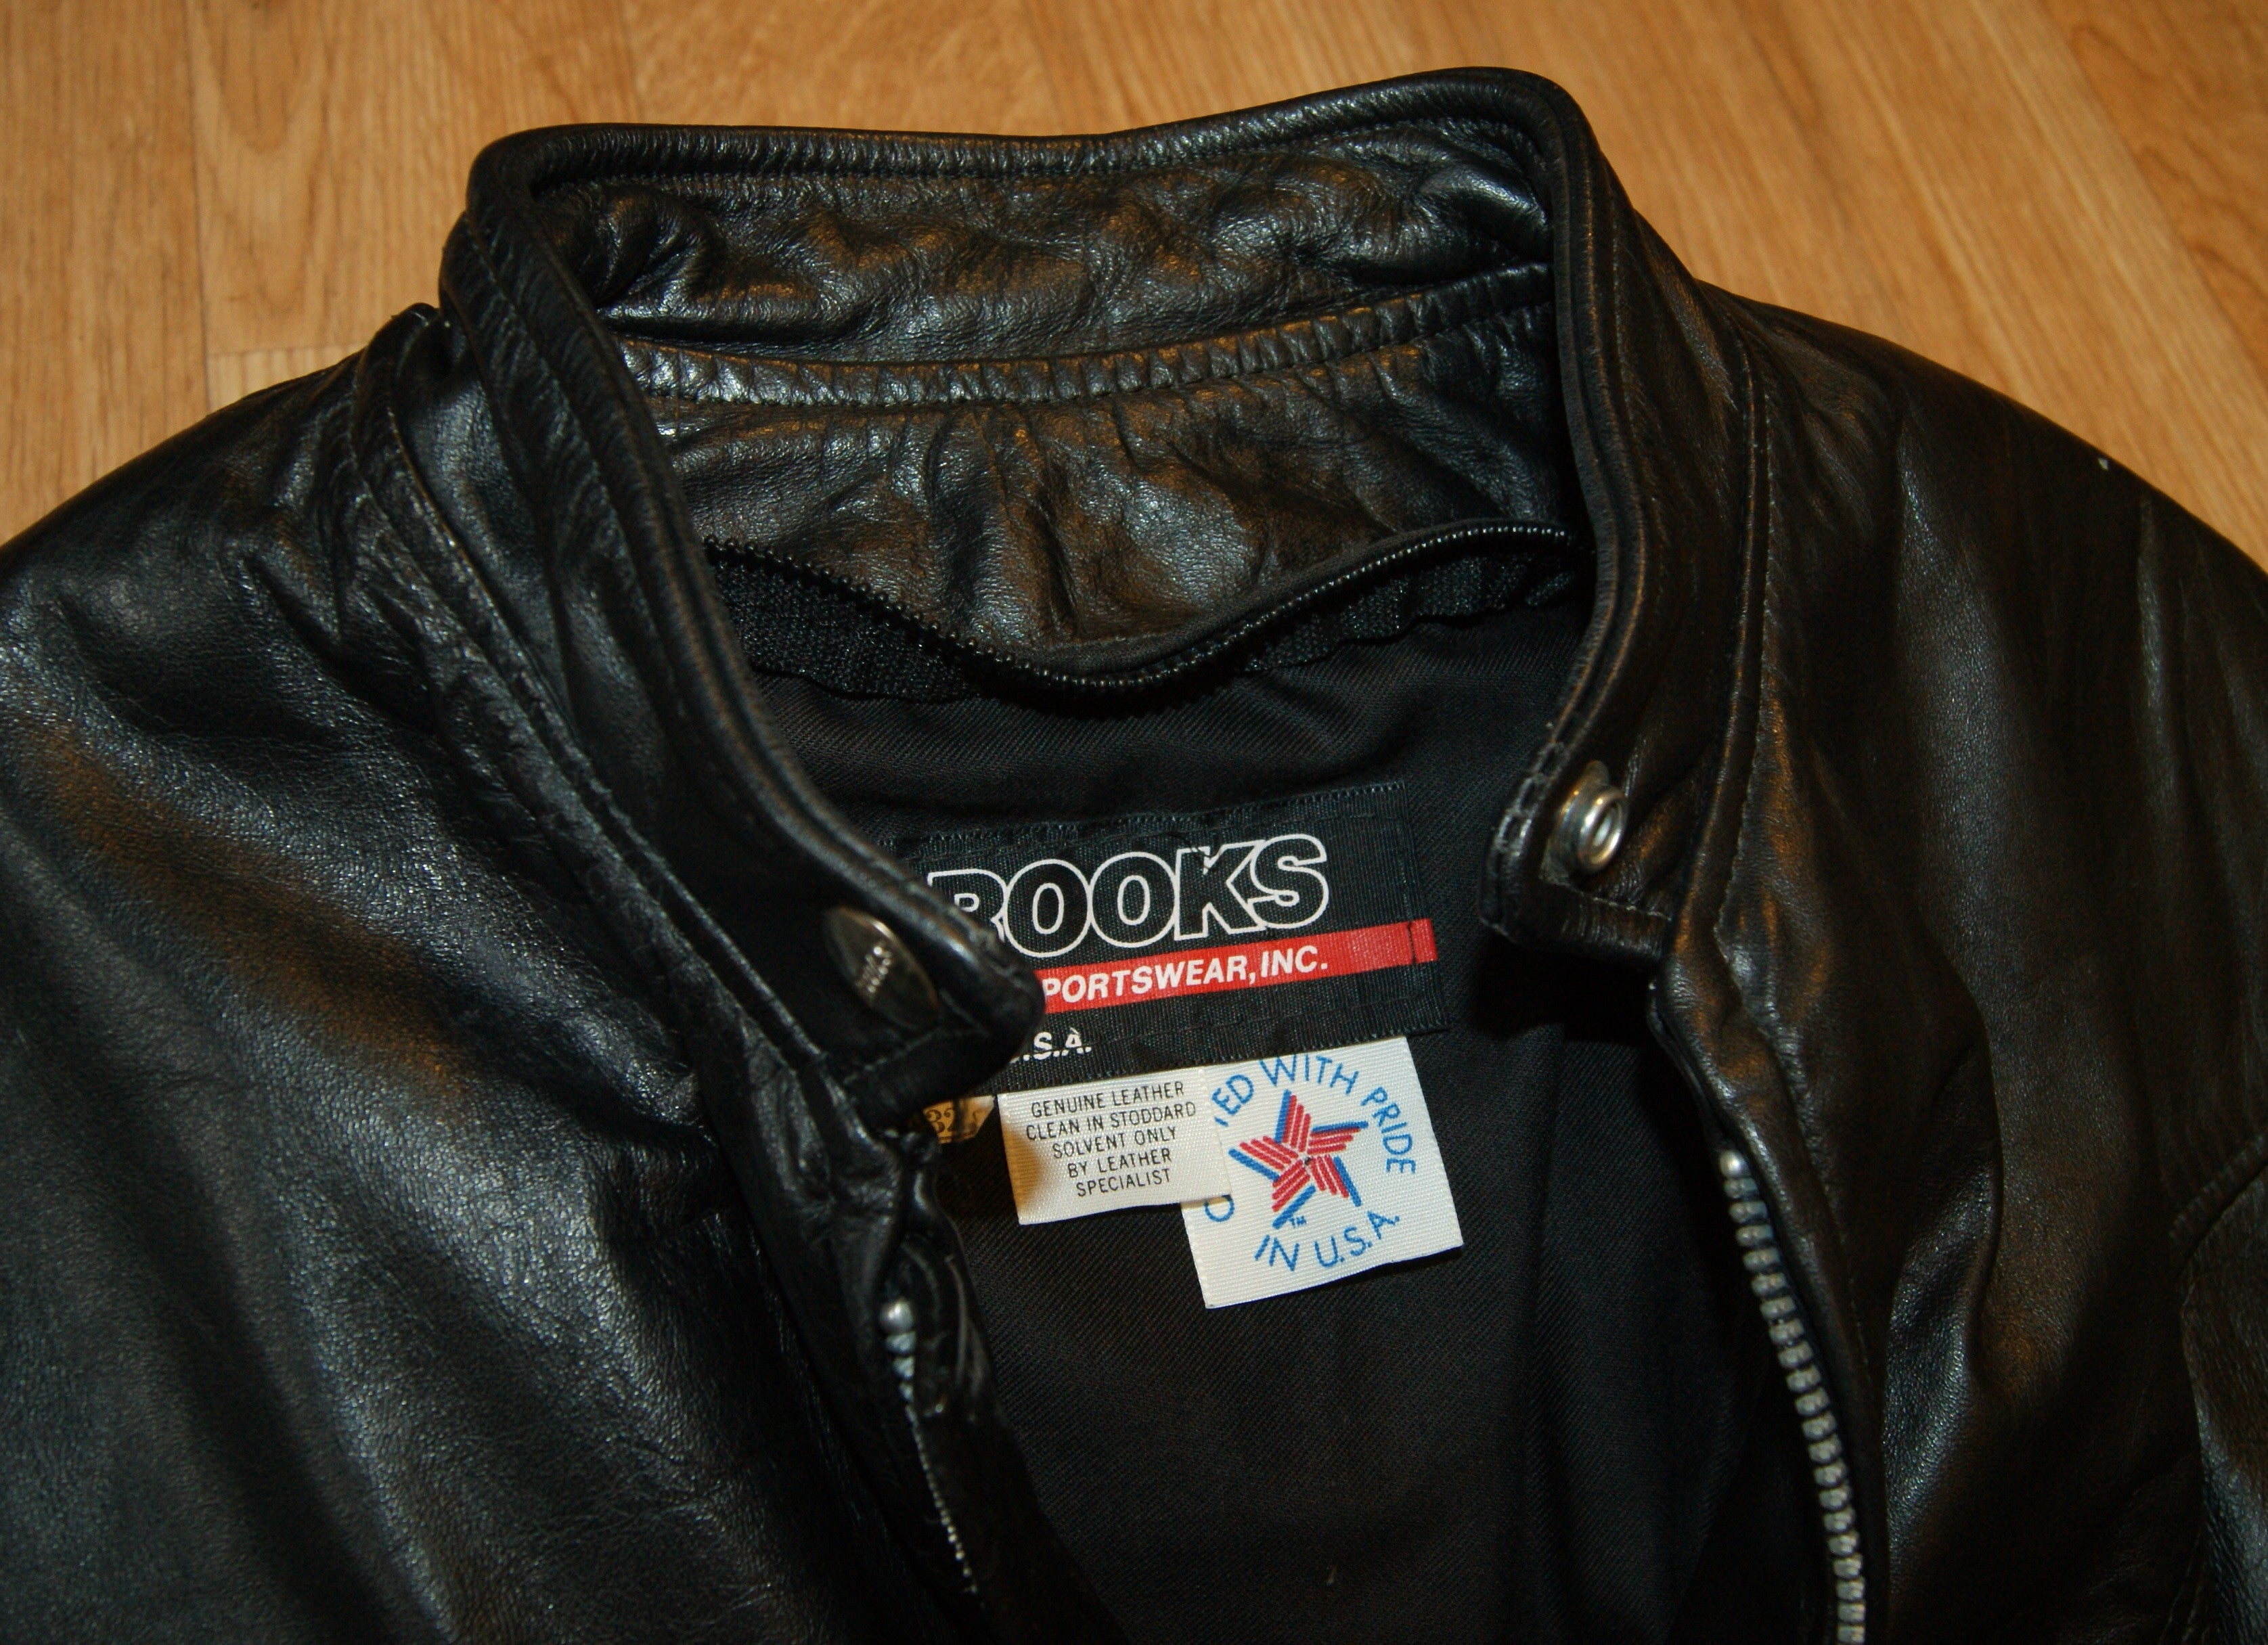 Vintage Brooks Cafe Racer Jacket, size 32